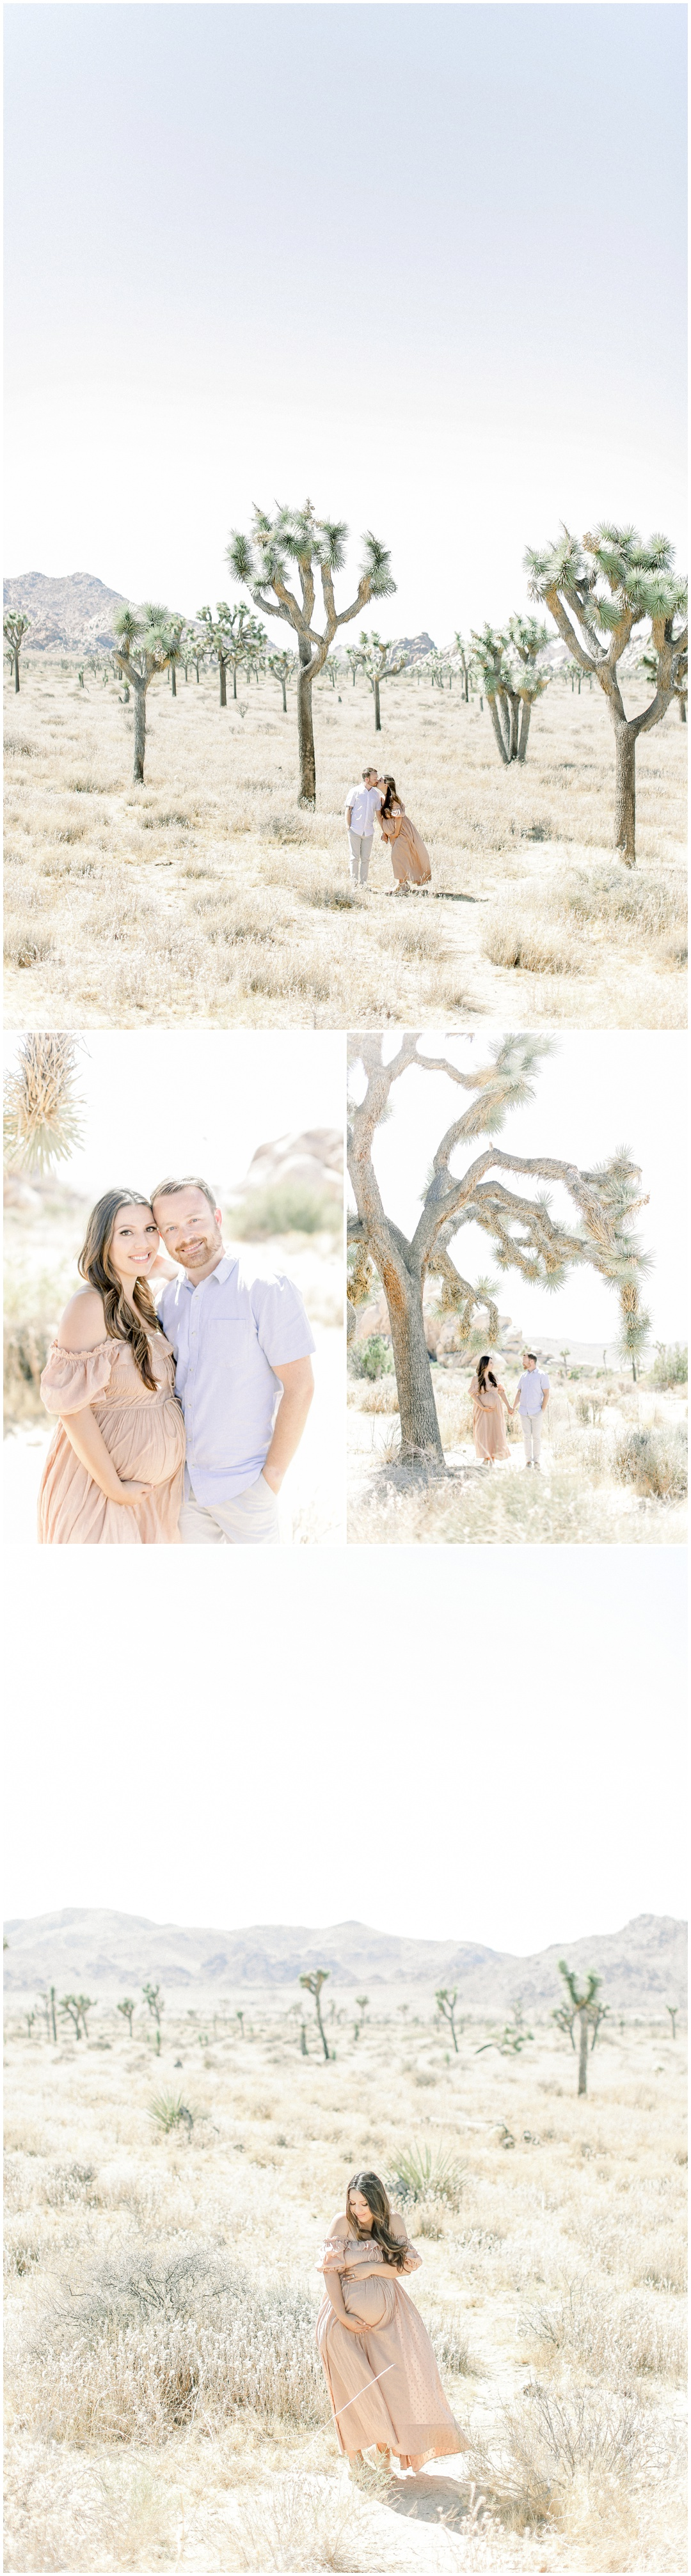 Newport_Beach_Joshua_Tree_Maternity_Photos_Session_Leliani_Hailey_Shane_Hailey_Maternity_Session__4270.jpg